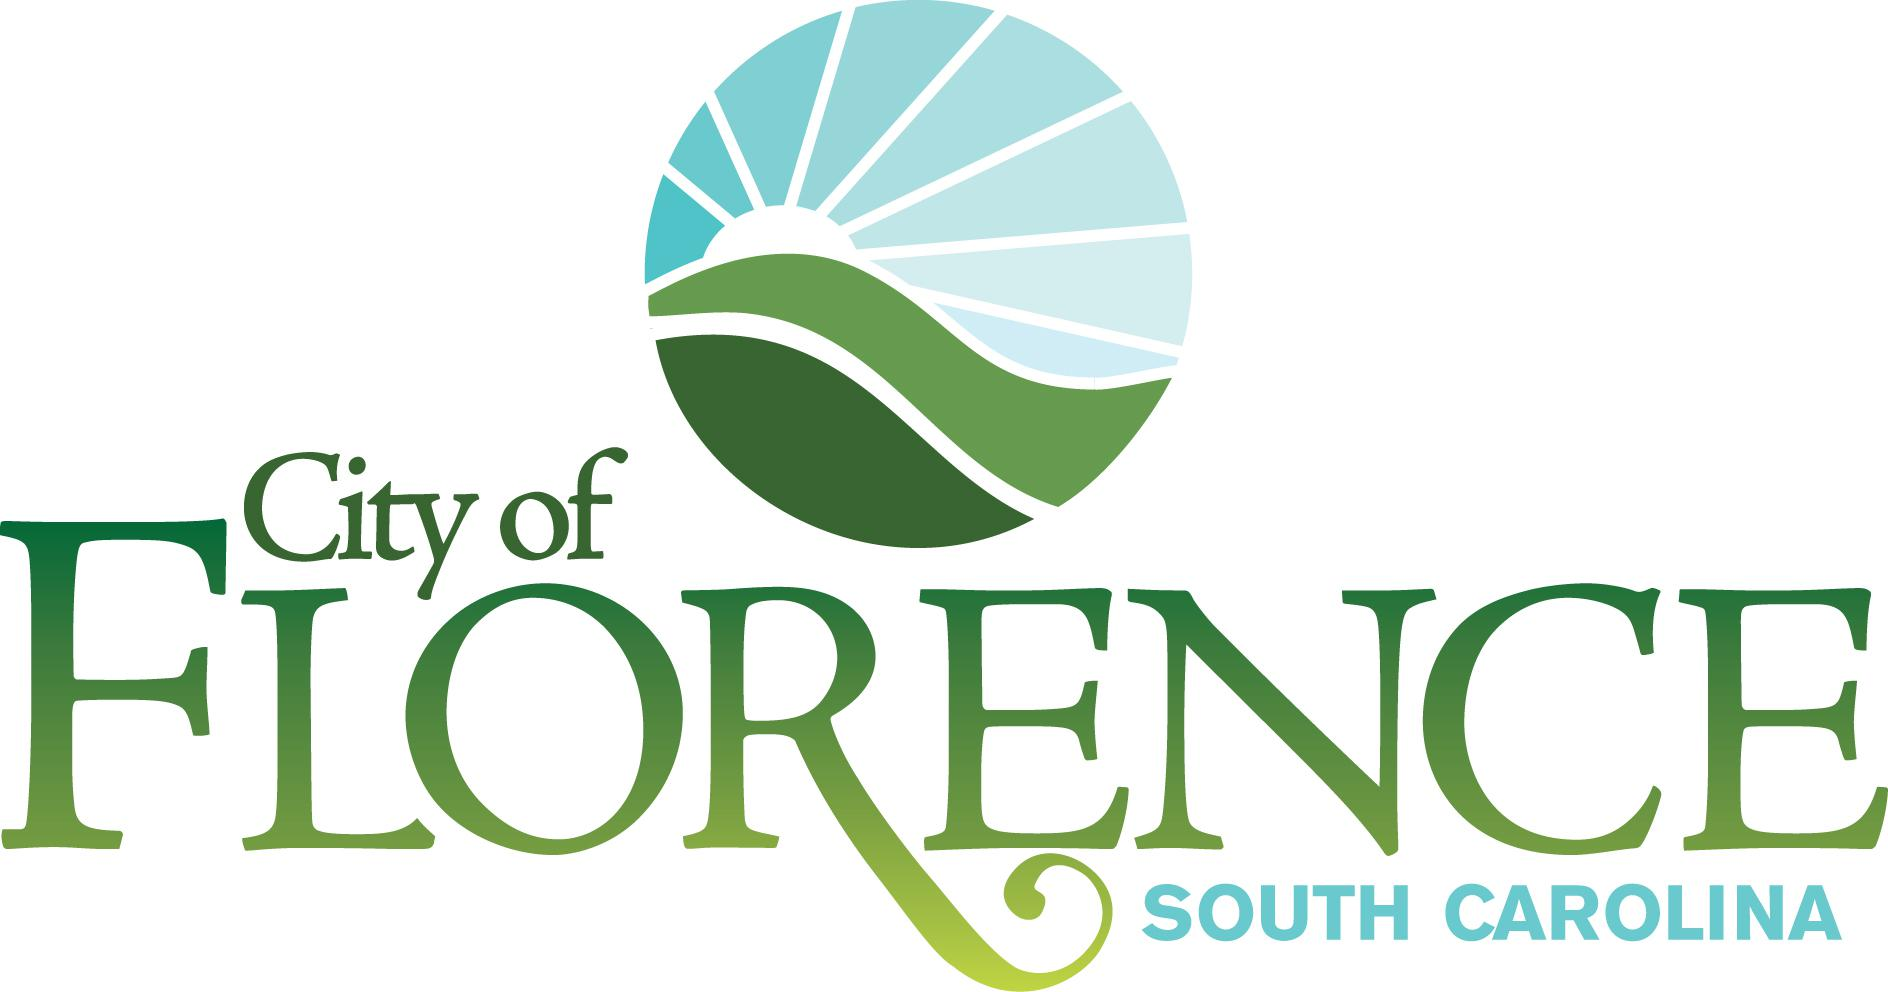 City of Florence South Carolina